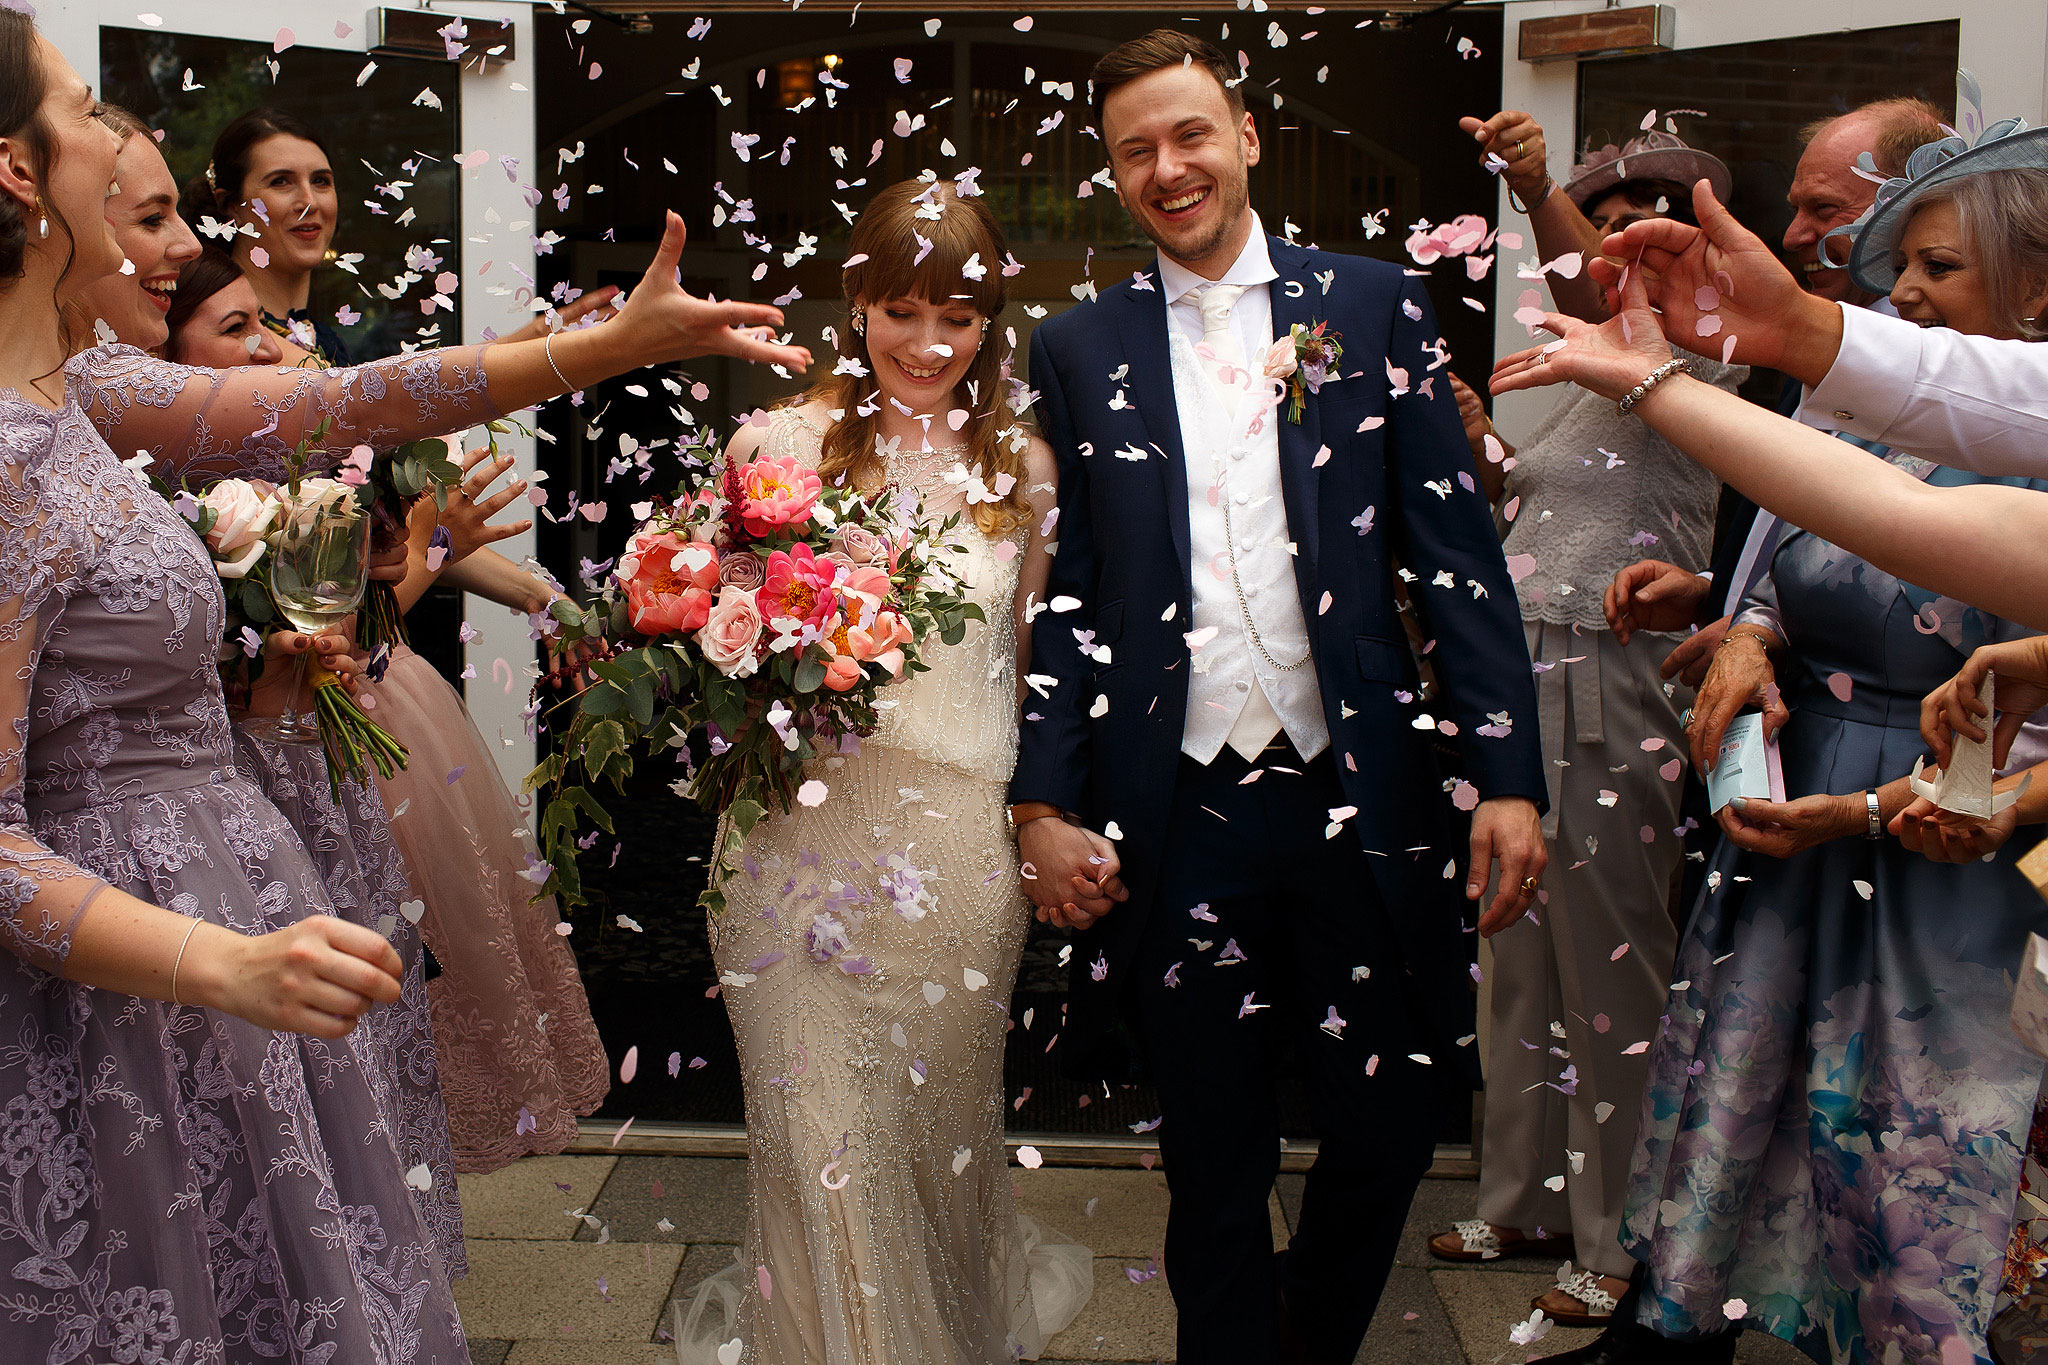 Confetti being thrown outside - The Villa at Wrea Green Wedding Photography - Toni Darcy Photography